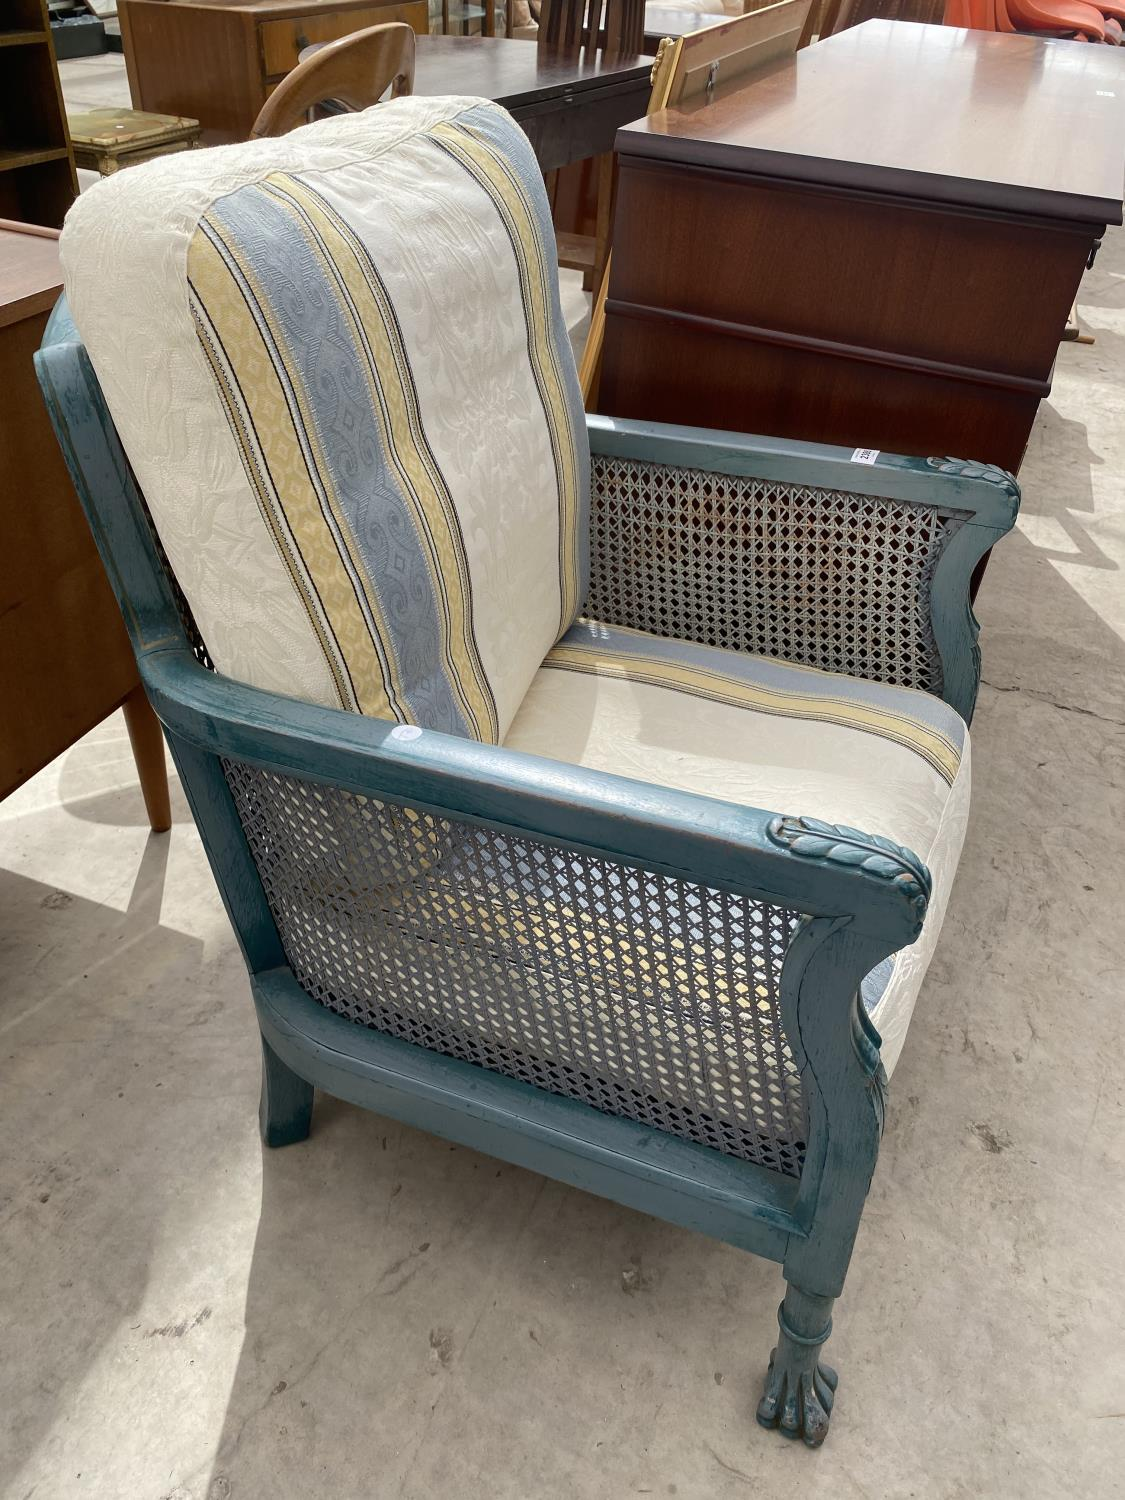 A PAIR OF EARLY 20TH CENTURY BERGERE FIRESIDE CHAIRS ON CLAW FEET, HAVING SHABBY CHIC PAINTING, - Image 3 of 6